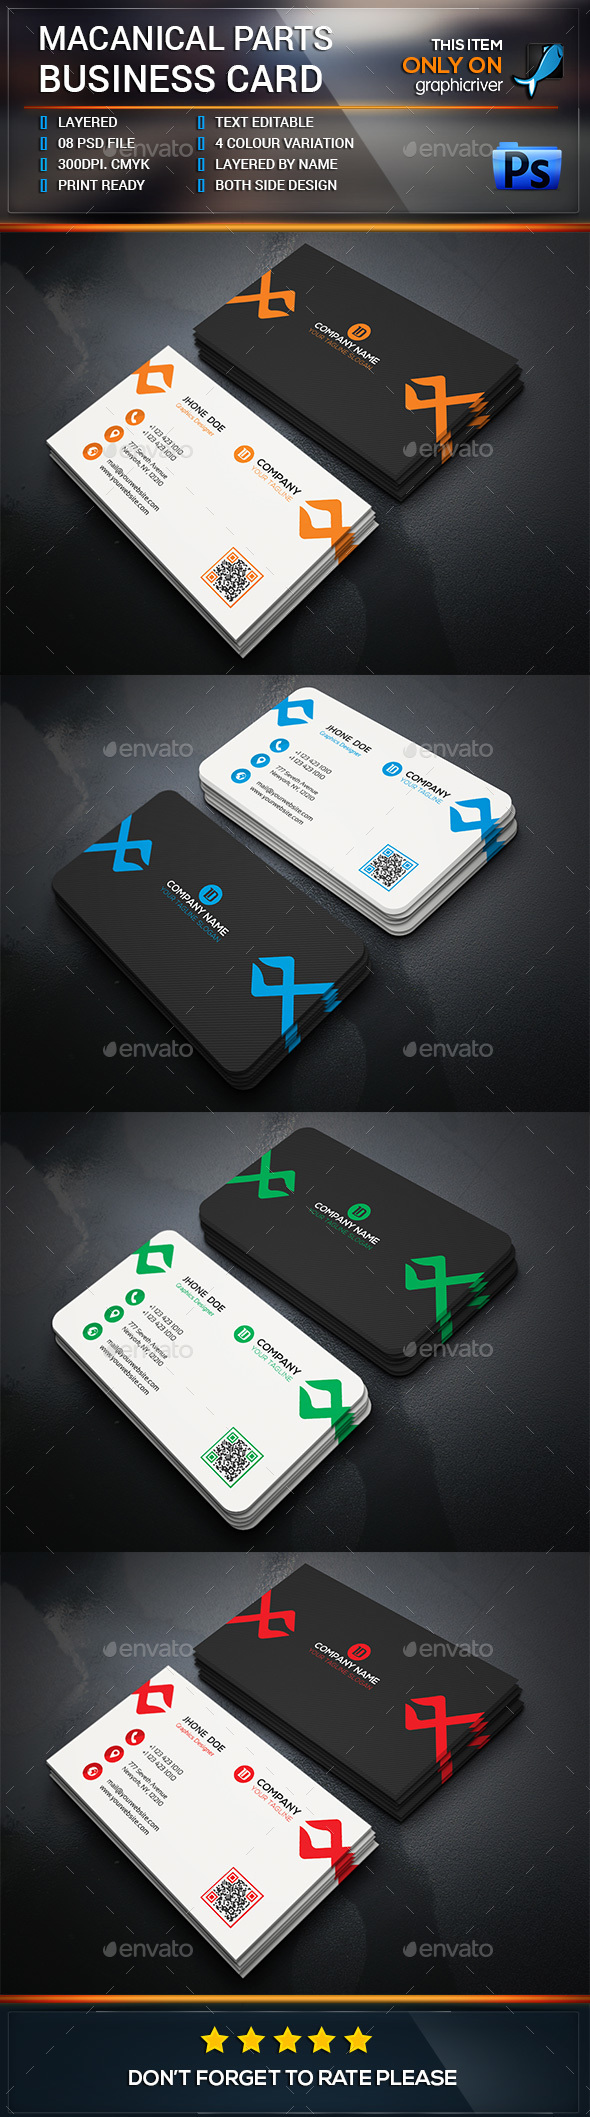 Mechanical Parts Business Card - Business Cards Print Templates